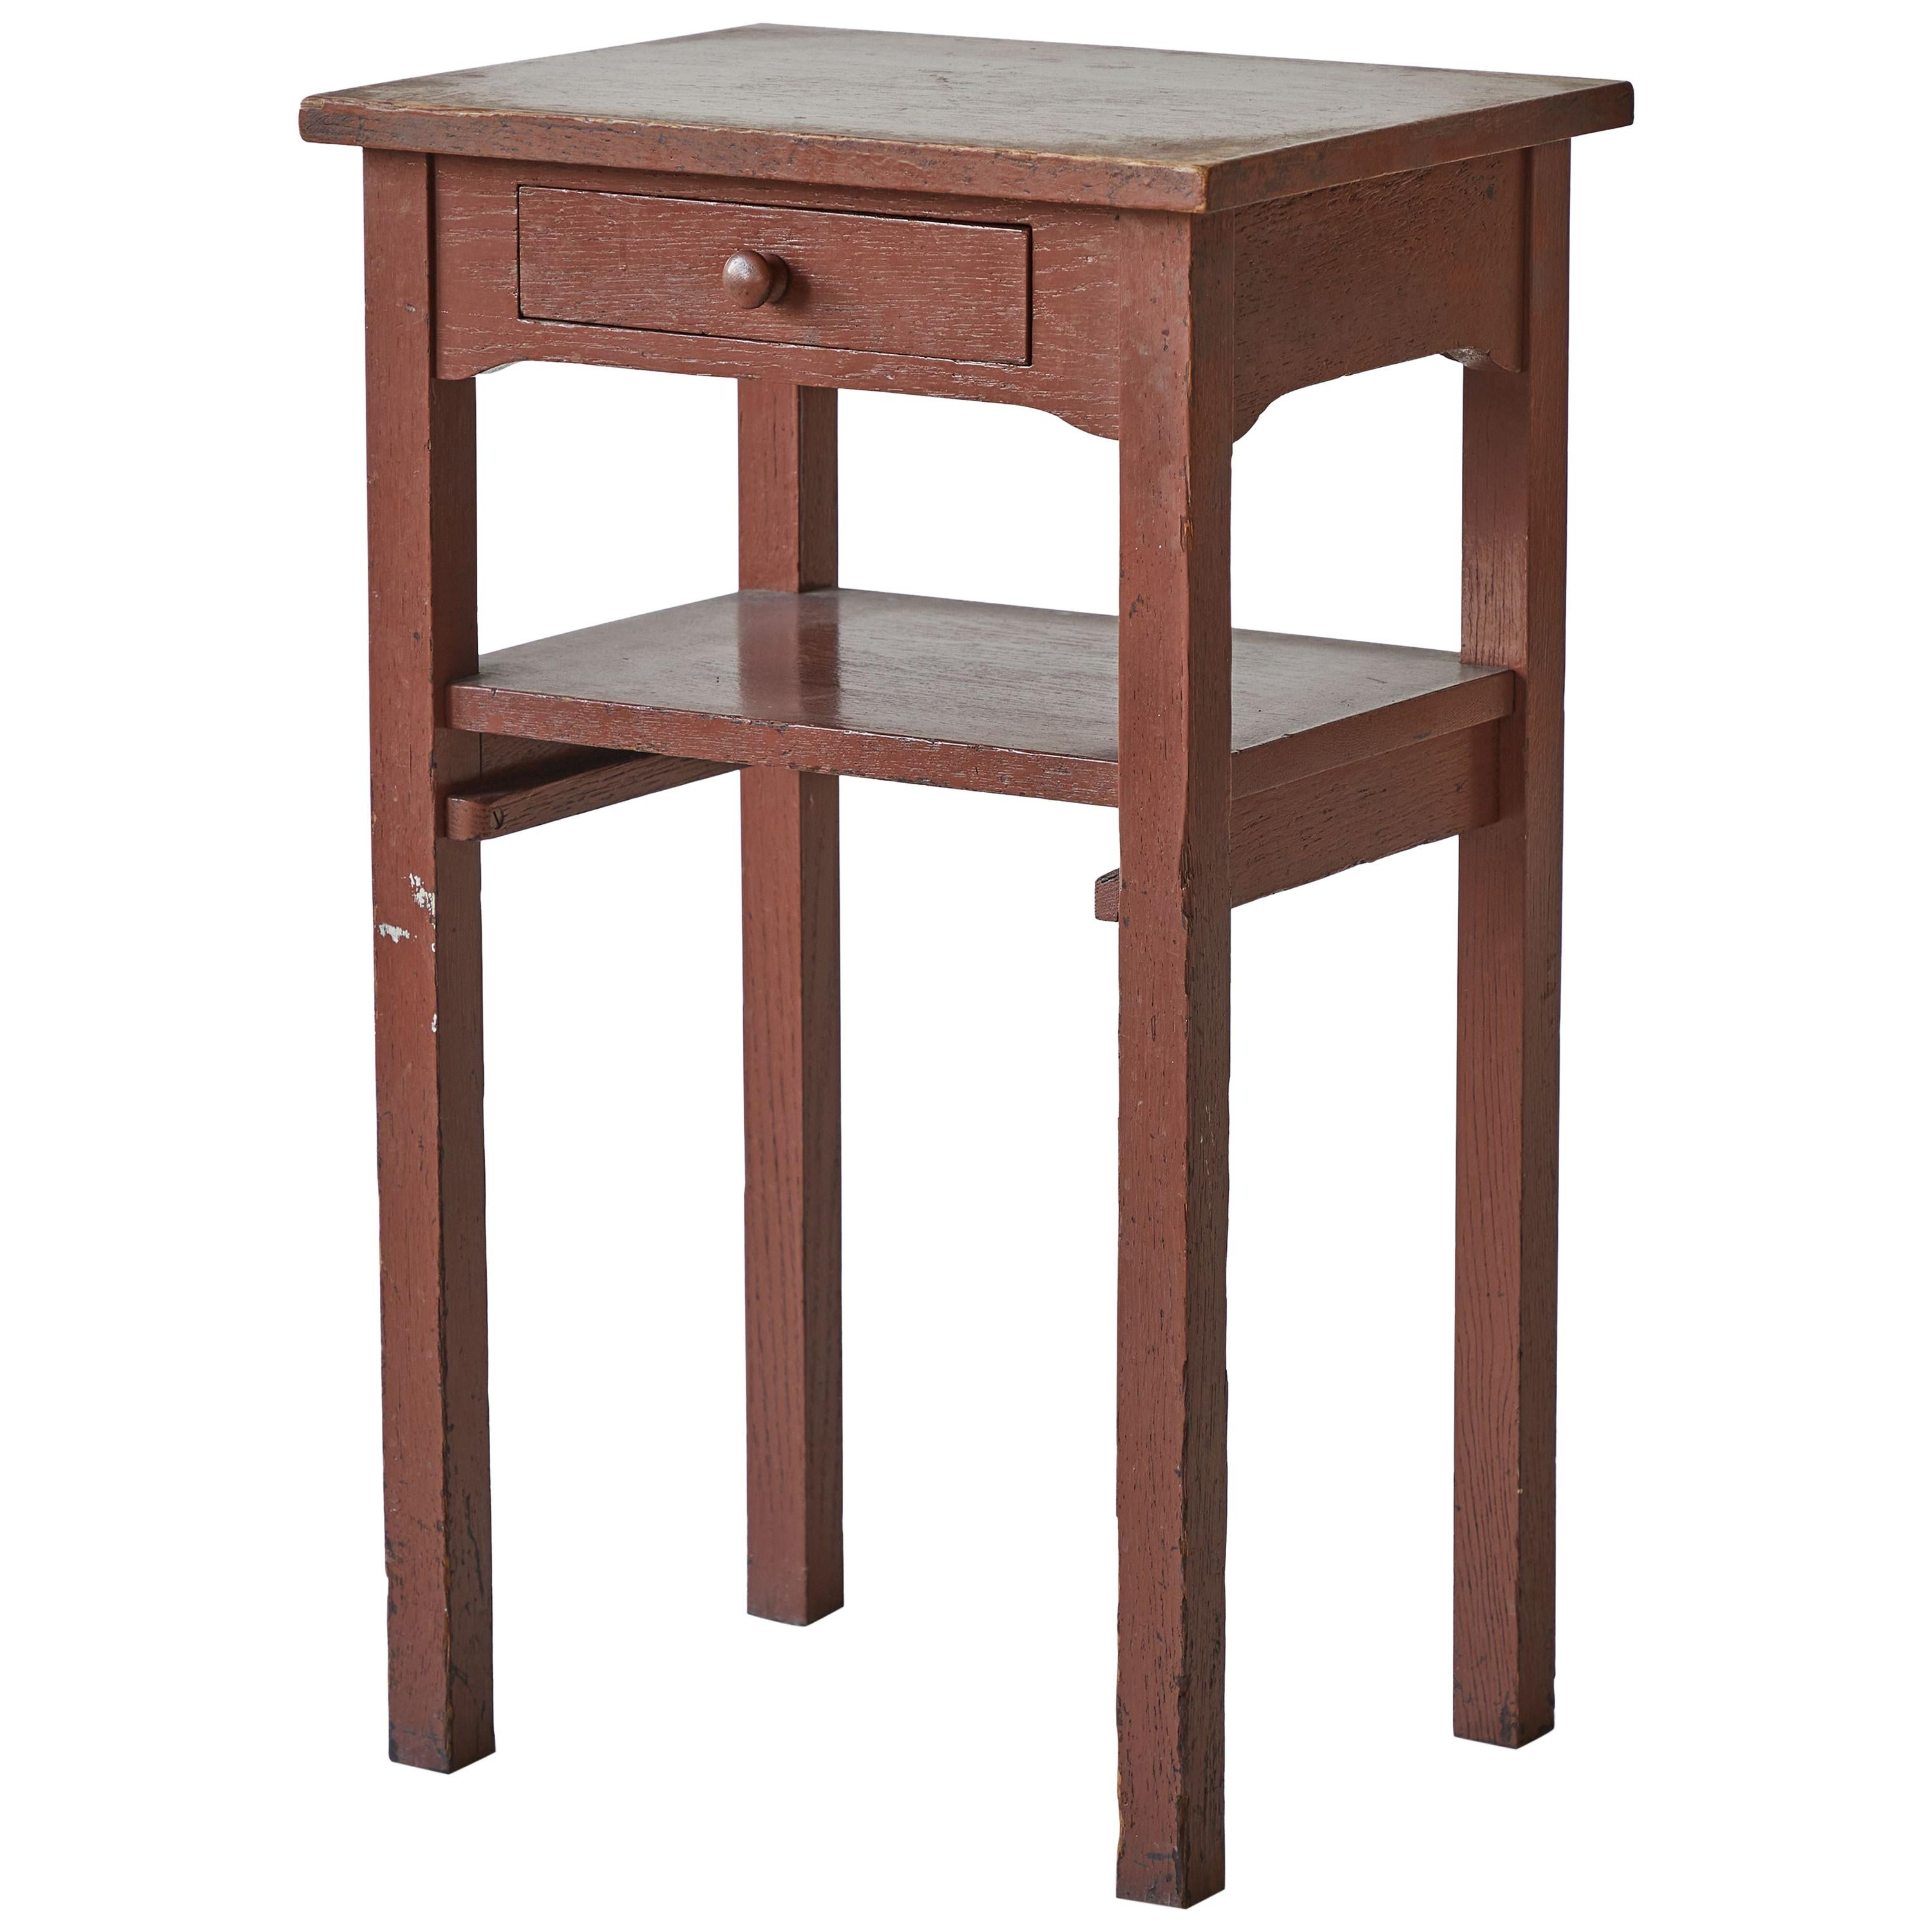 Early American Brown Painted Side Table